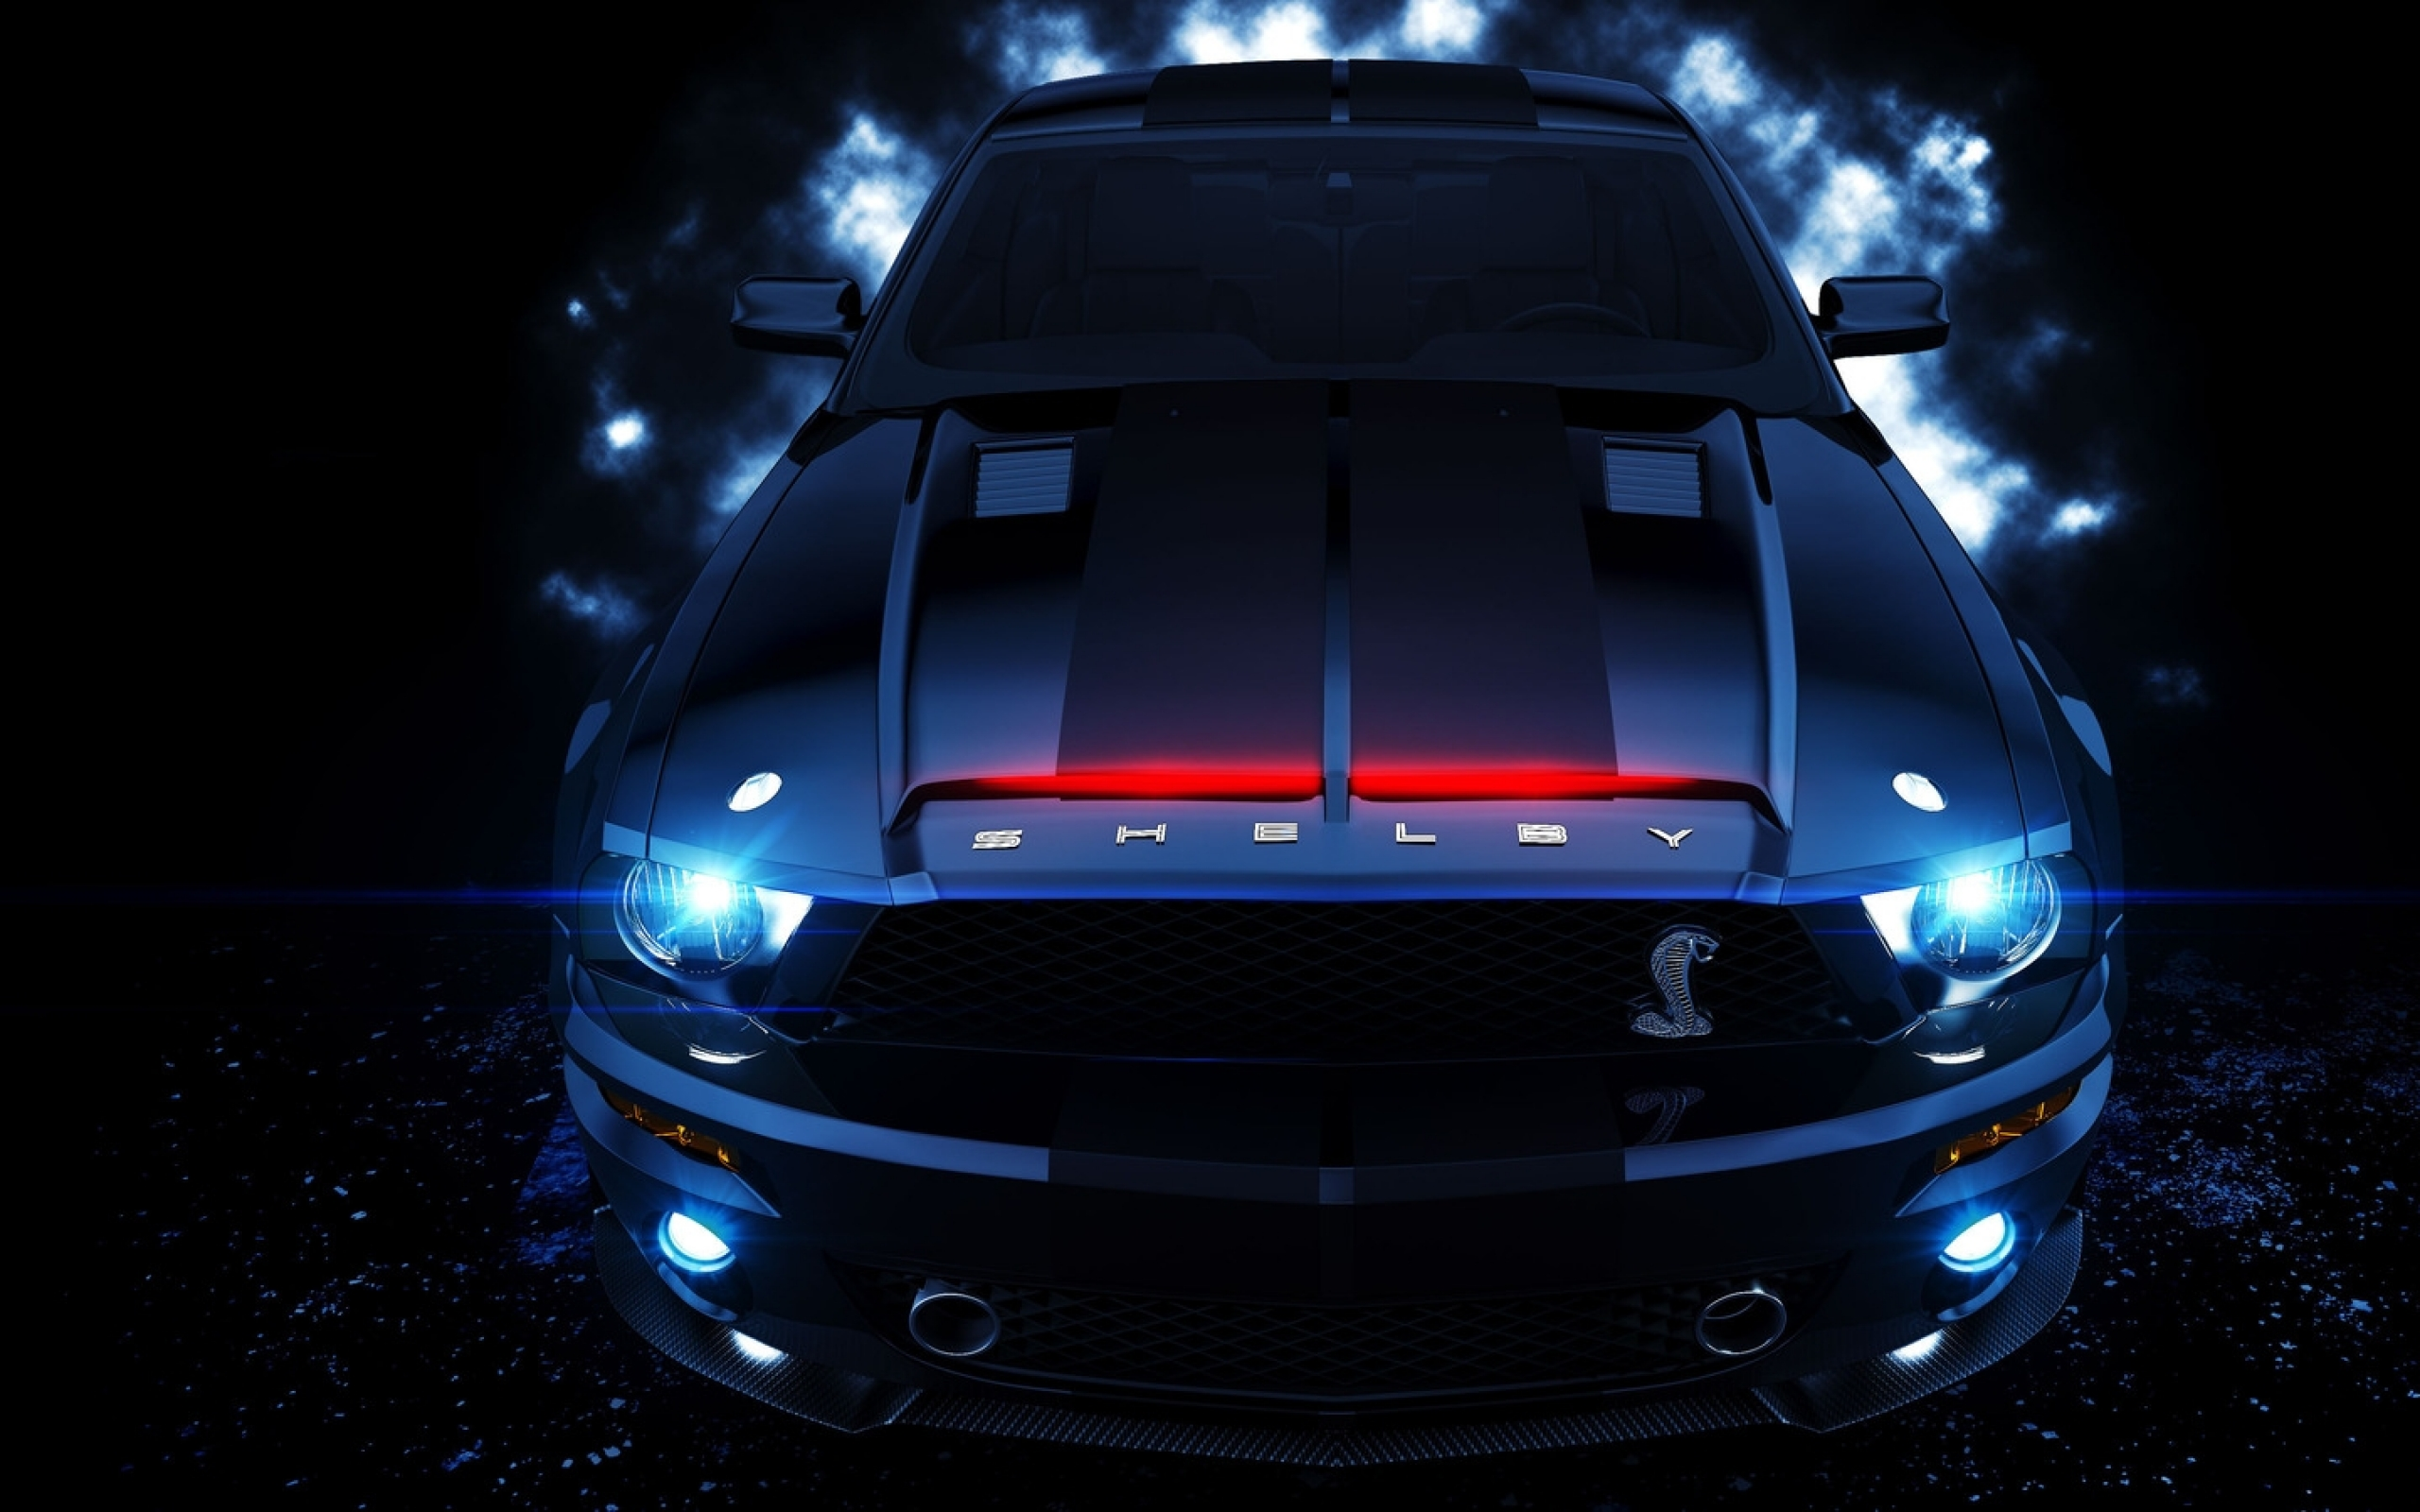 ford mustang knight rider shelby gt500 1600x900 wallpaper download 2560x1600